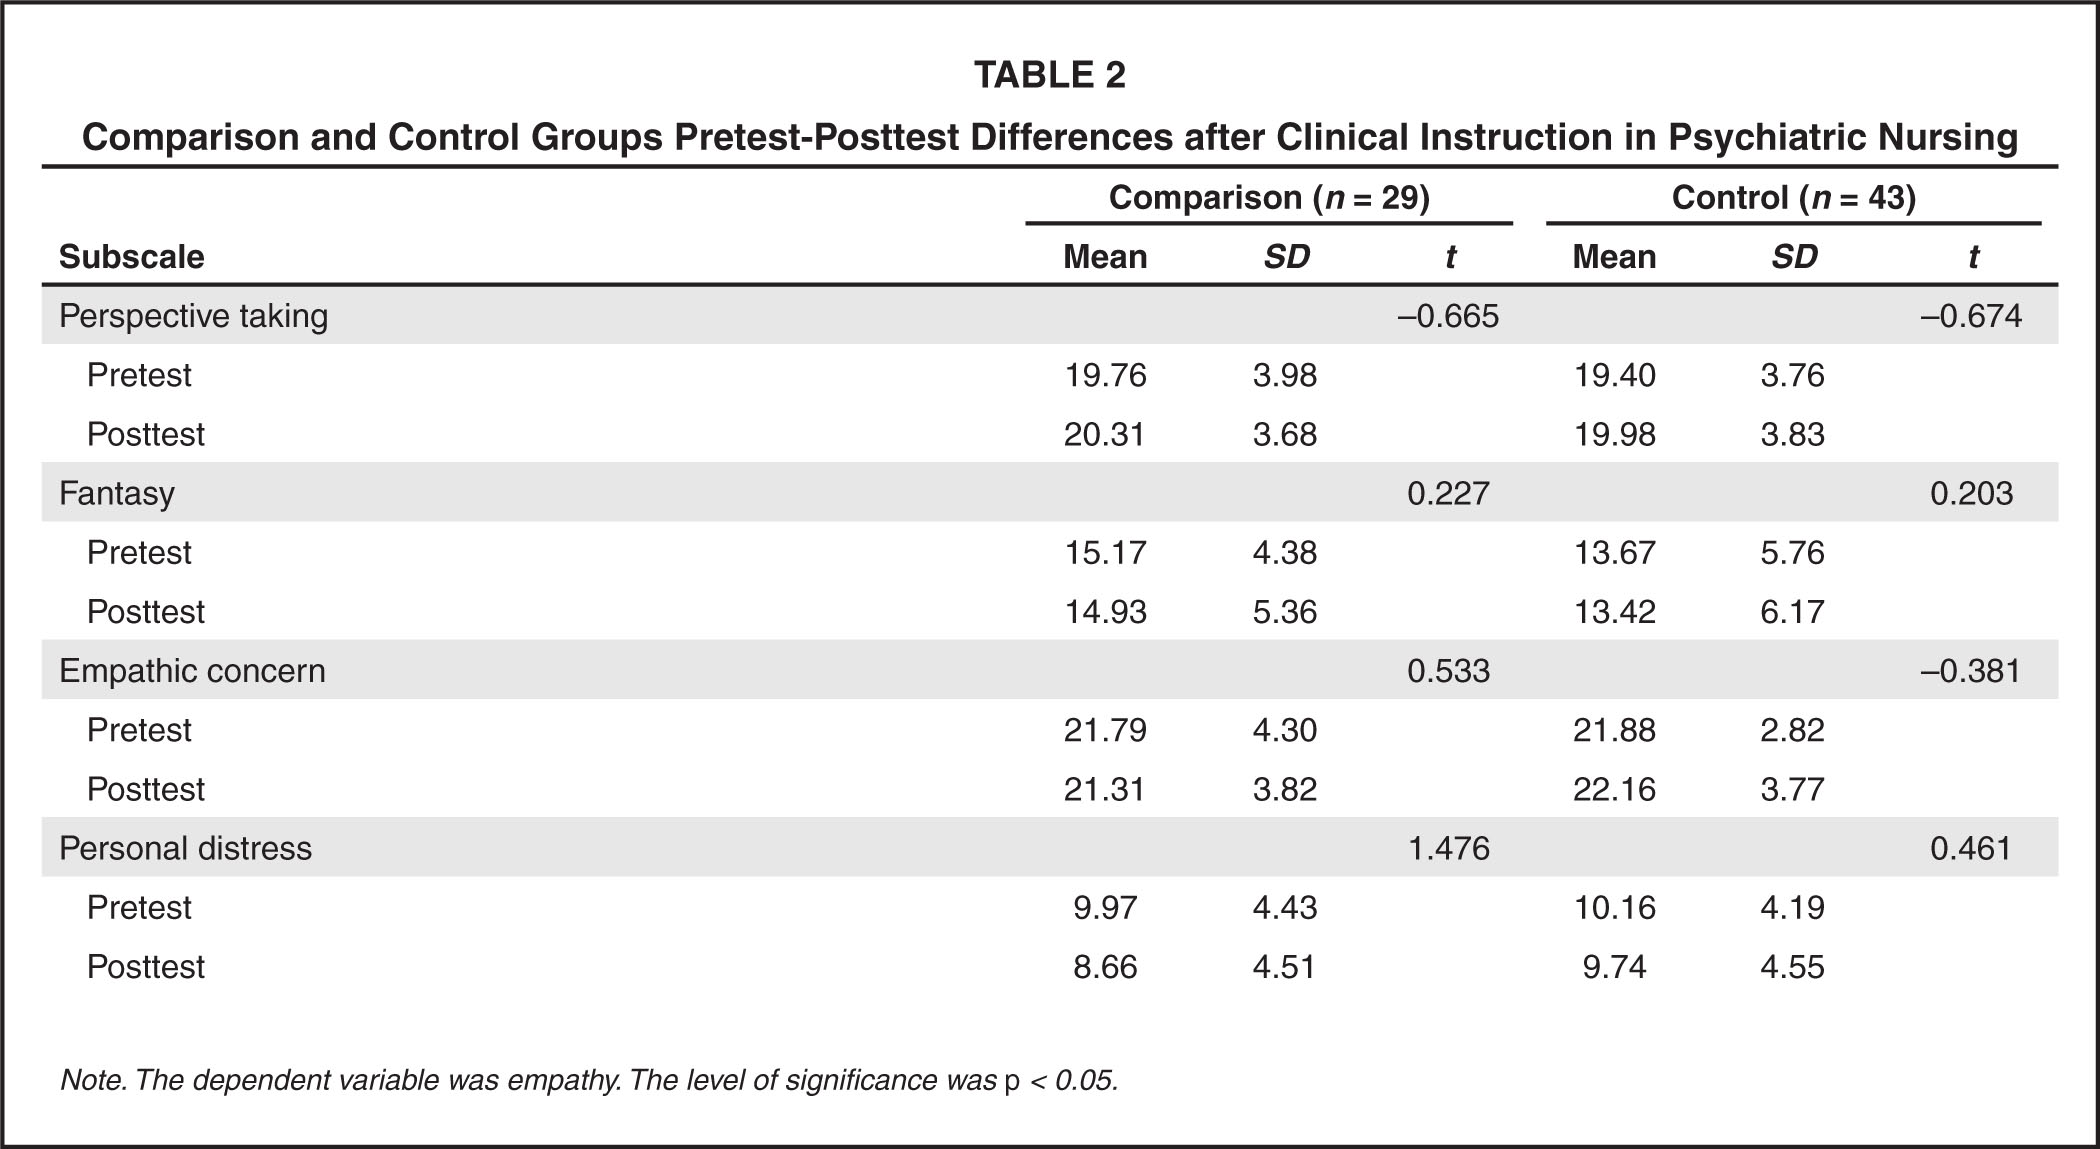 Comparison and Control Groups Pretest-Posttest Differences After Clinical Instruction in Psychiatric Nursing